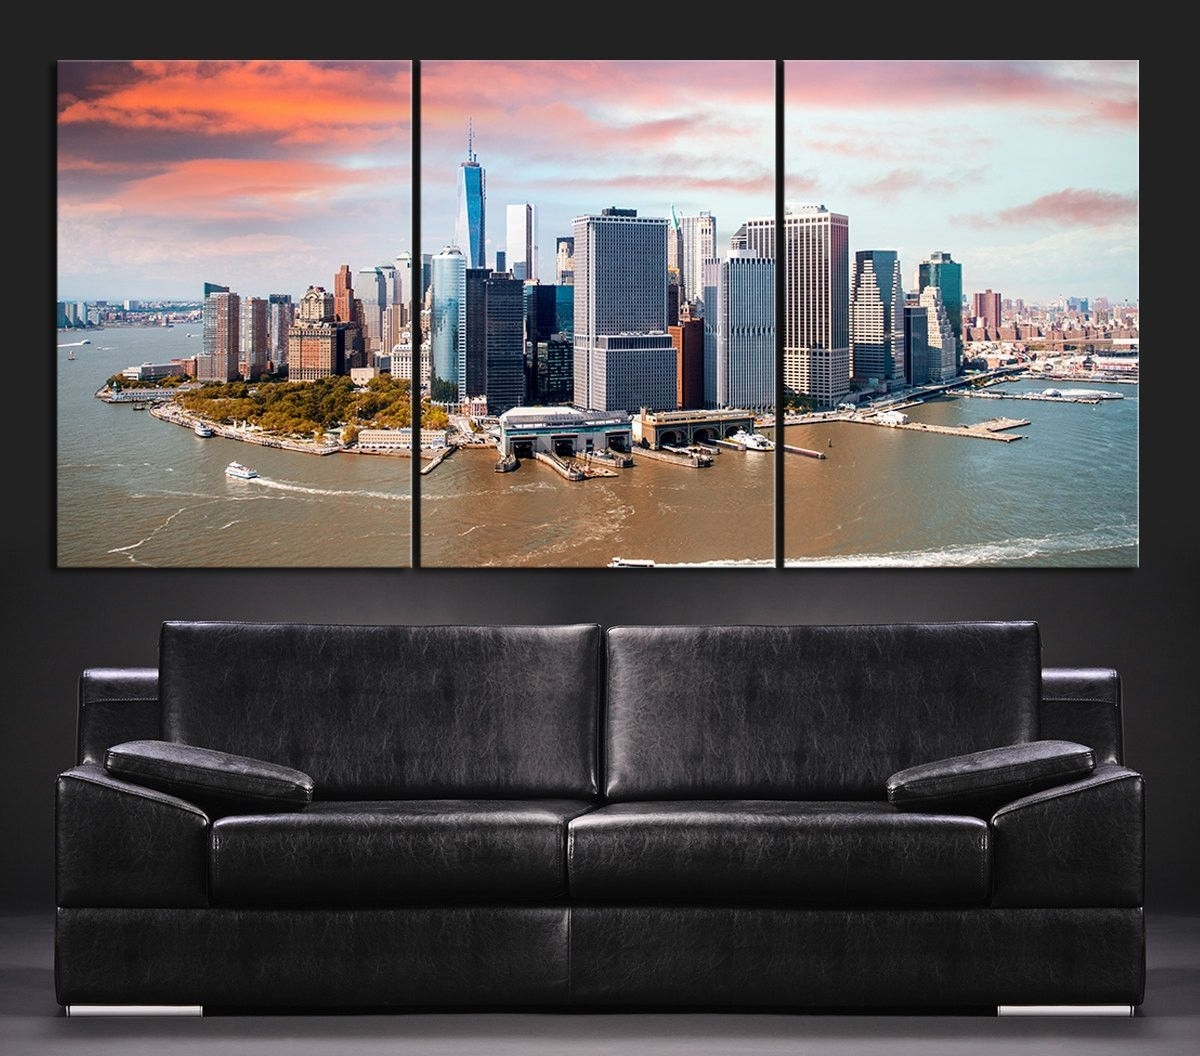 Large Wall Art Canvas Print + Skyline Panorama New York Manhattan Pertaining To Most Recently Released Murals Canvas Wall Art (View 3 of 15)